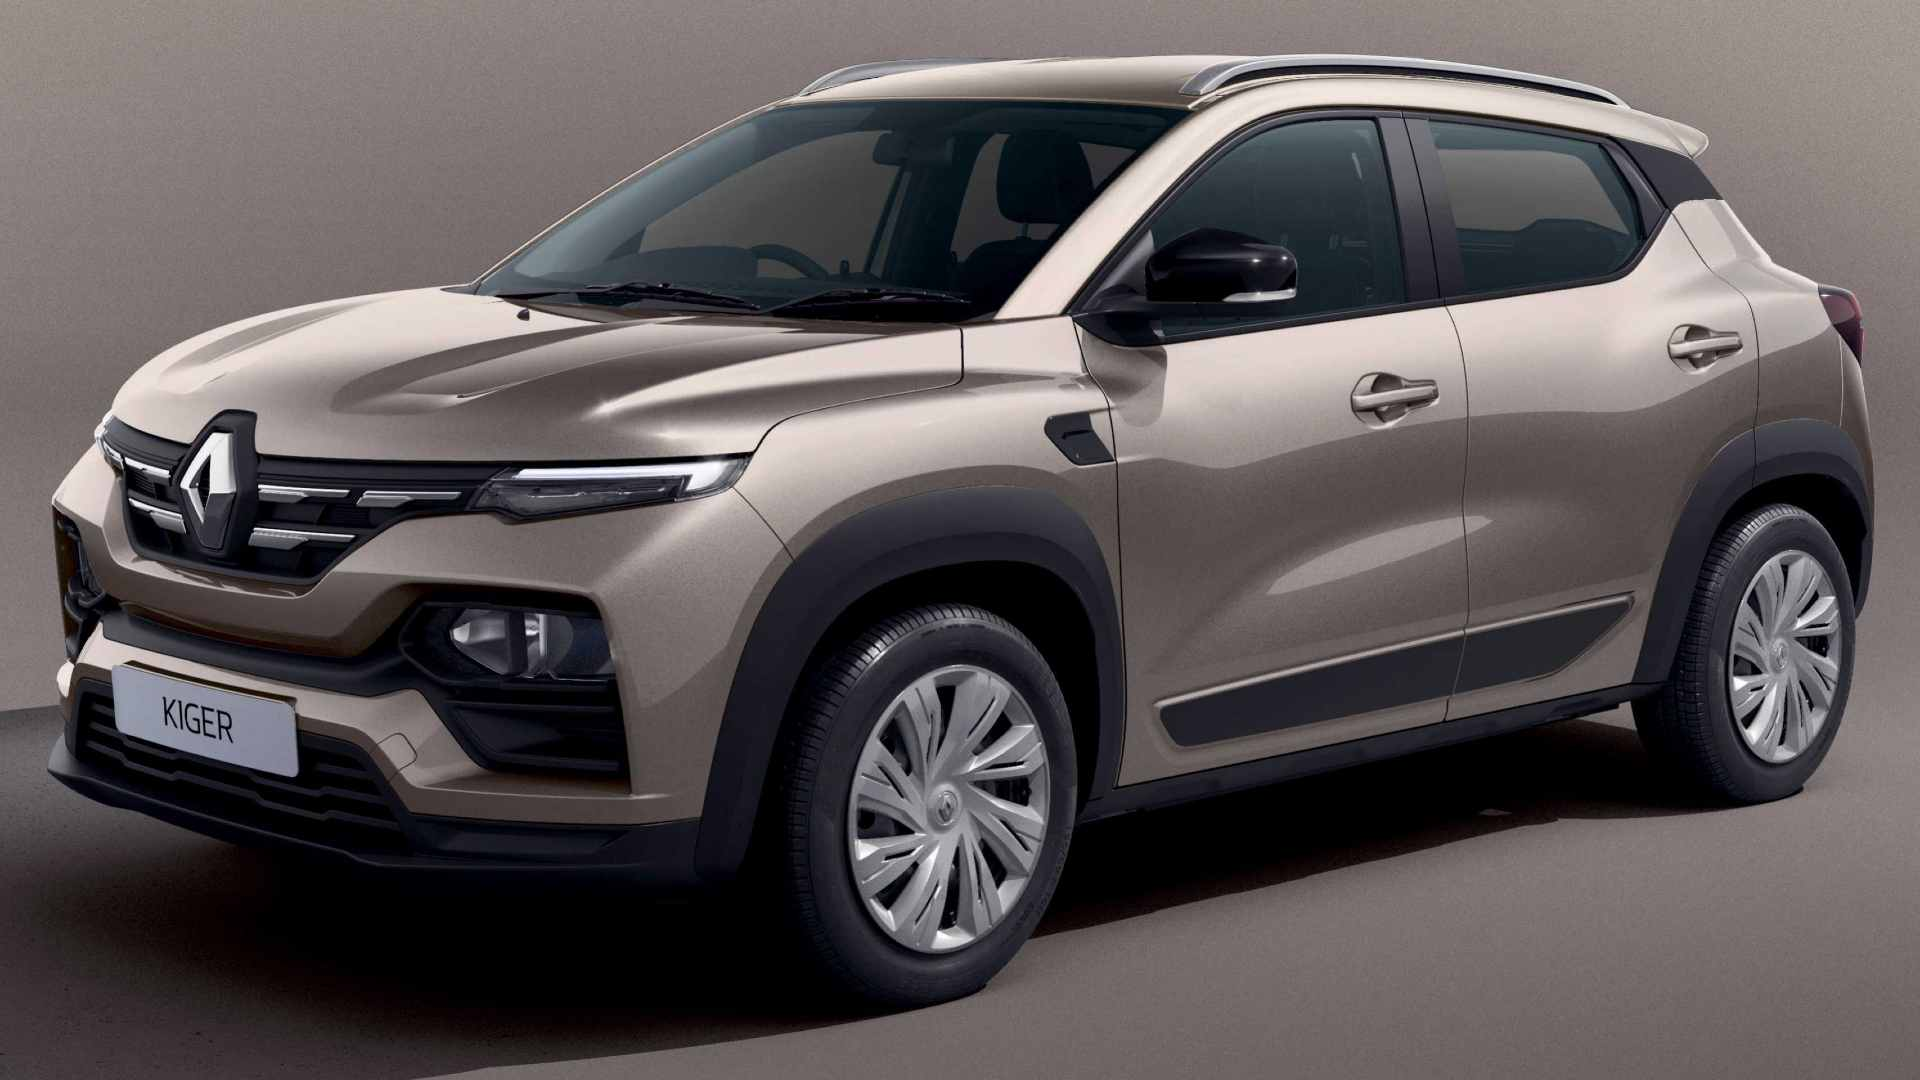 Renault Kiger launched in India at Rs 5.45 lakh; is India's most affordable compact SUV